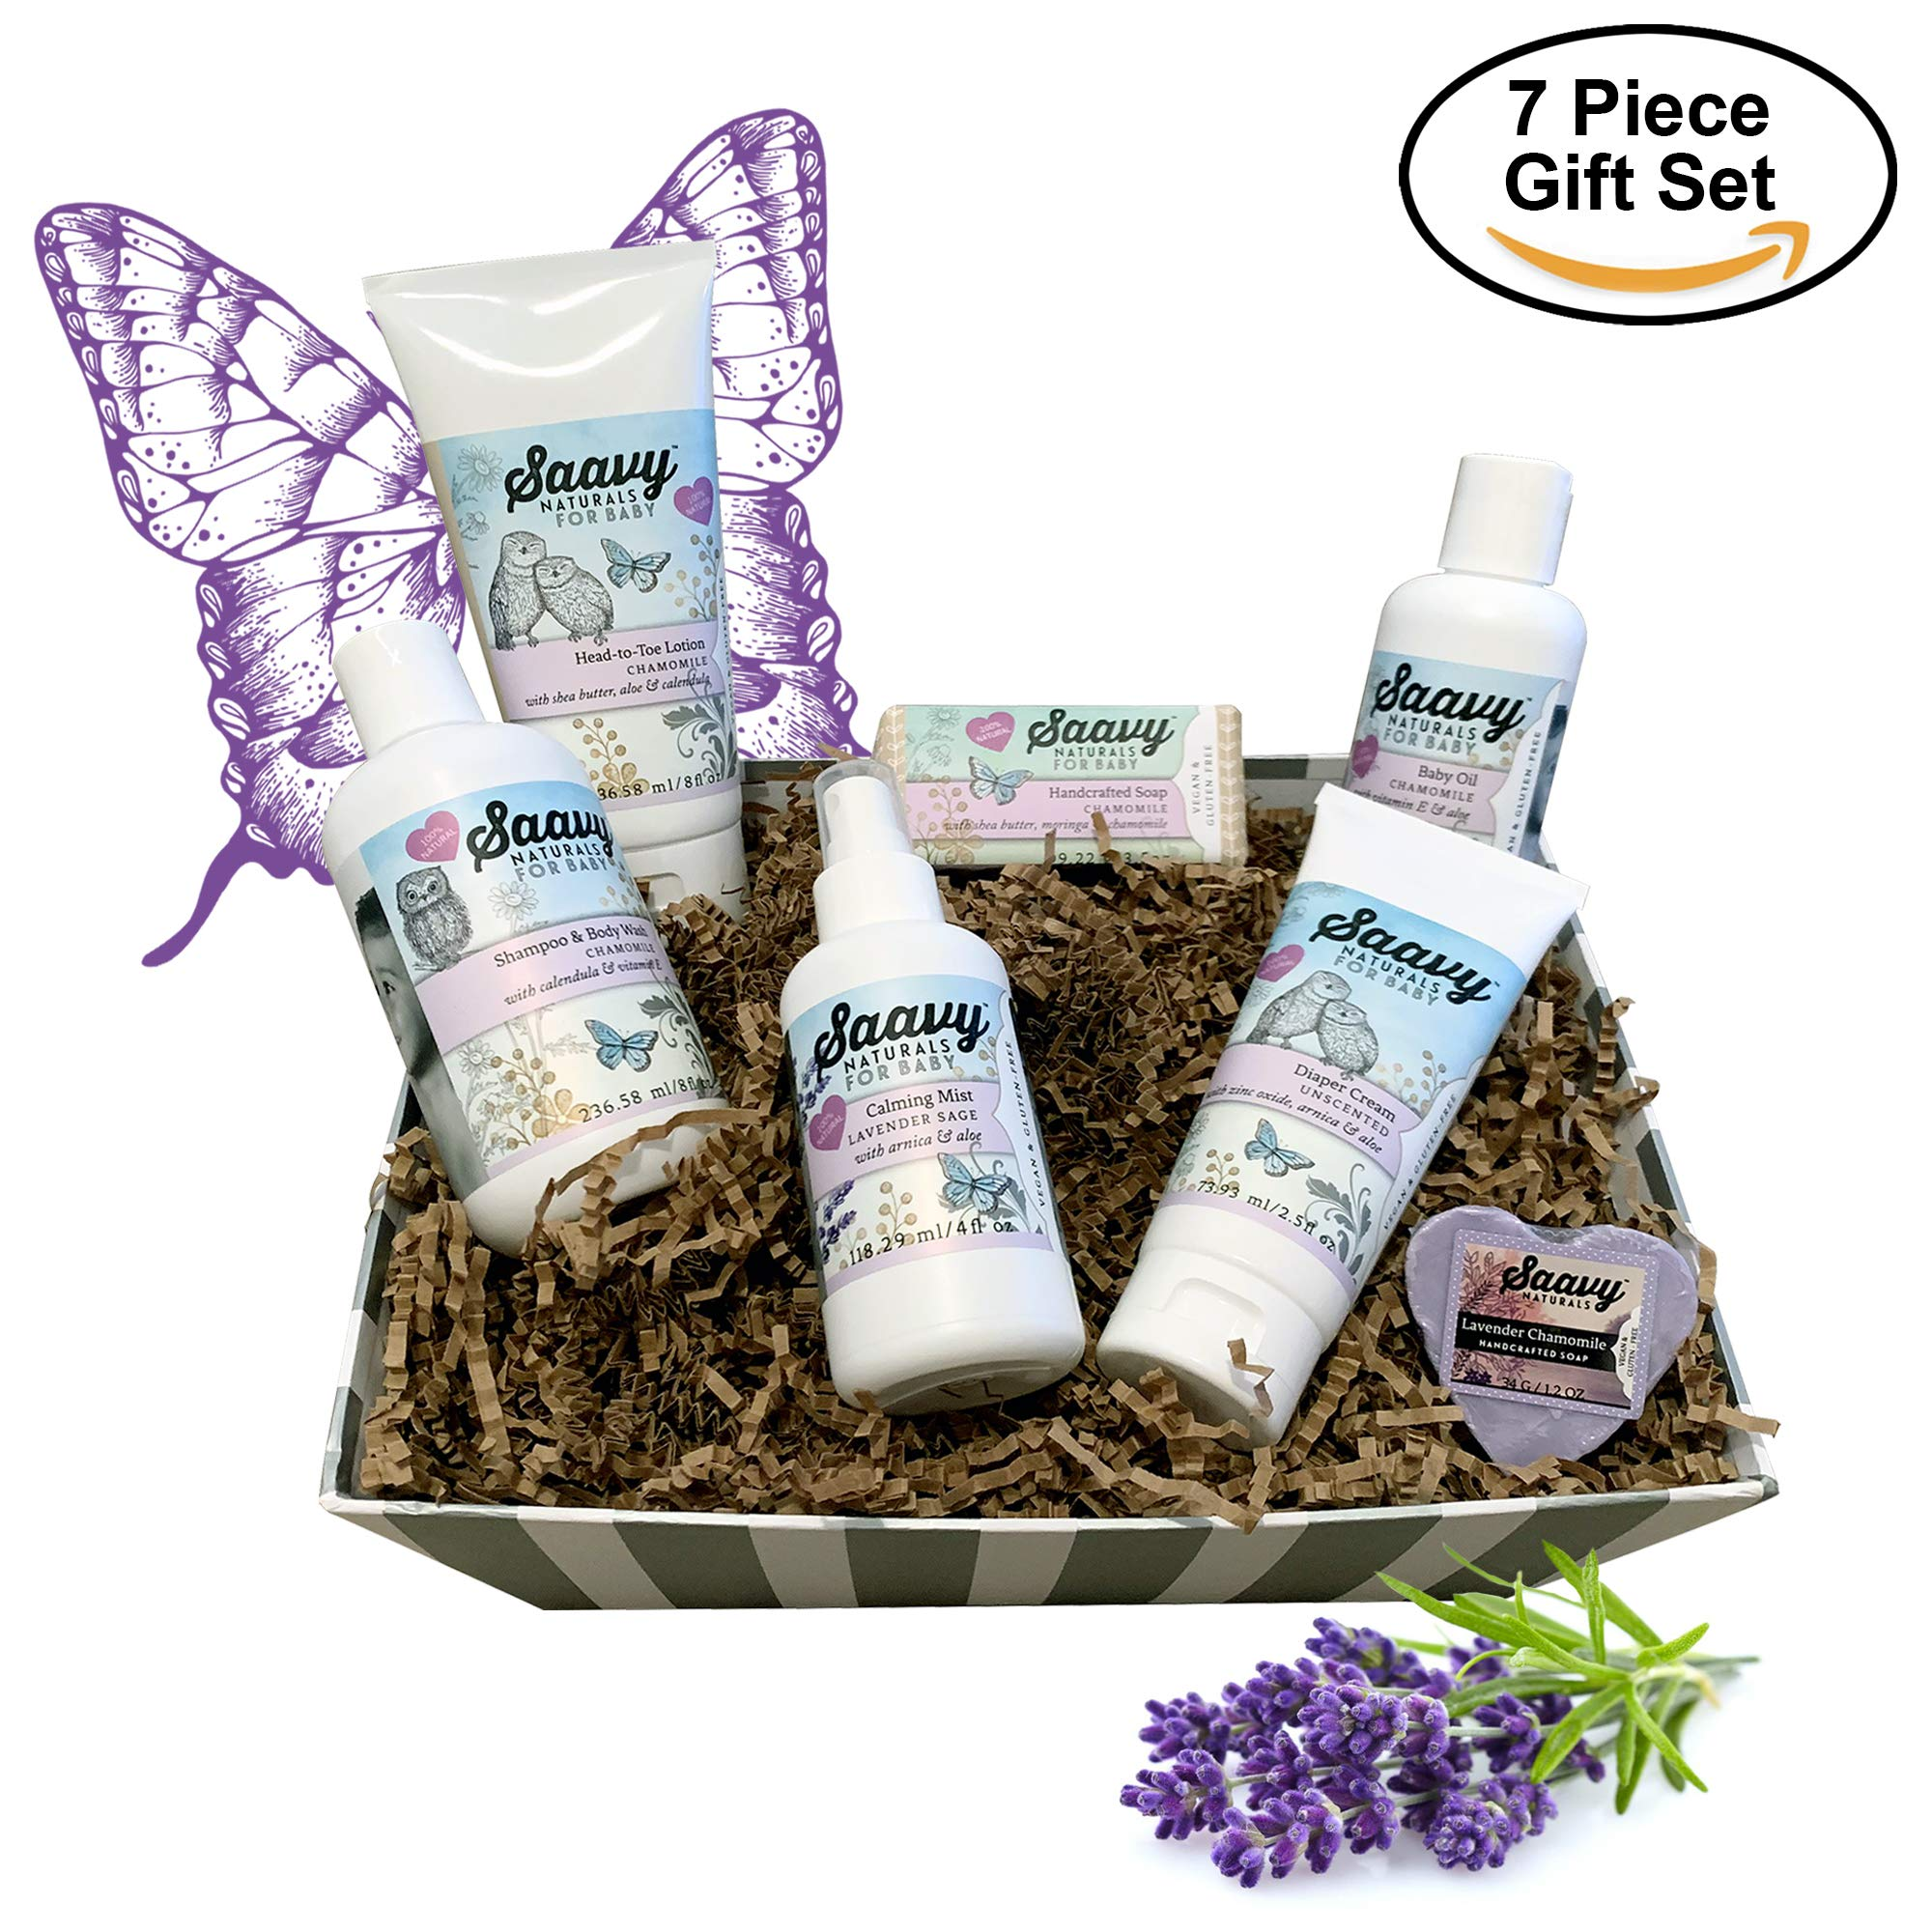 Saavy Naturals Baby Shower Gifts | Bath Set for Babies Includes 2 Soap Bars, 1 Infant Lotion, 1 Shampoo & Body Wash, 1 Baby Oil, 1 Calming Mist & 1 Unscented Diaper Cream | Chamomile & Lavender Scents by Saavy Naturals Baby